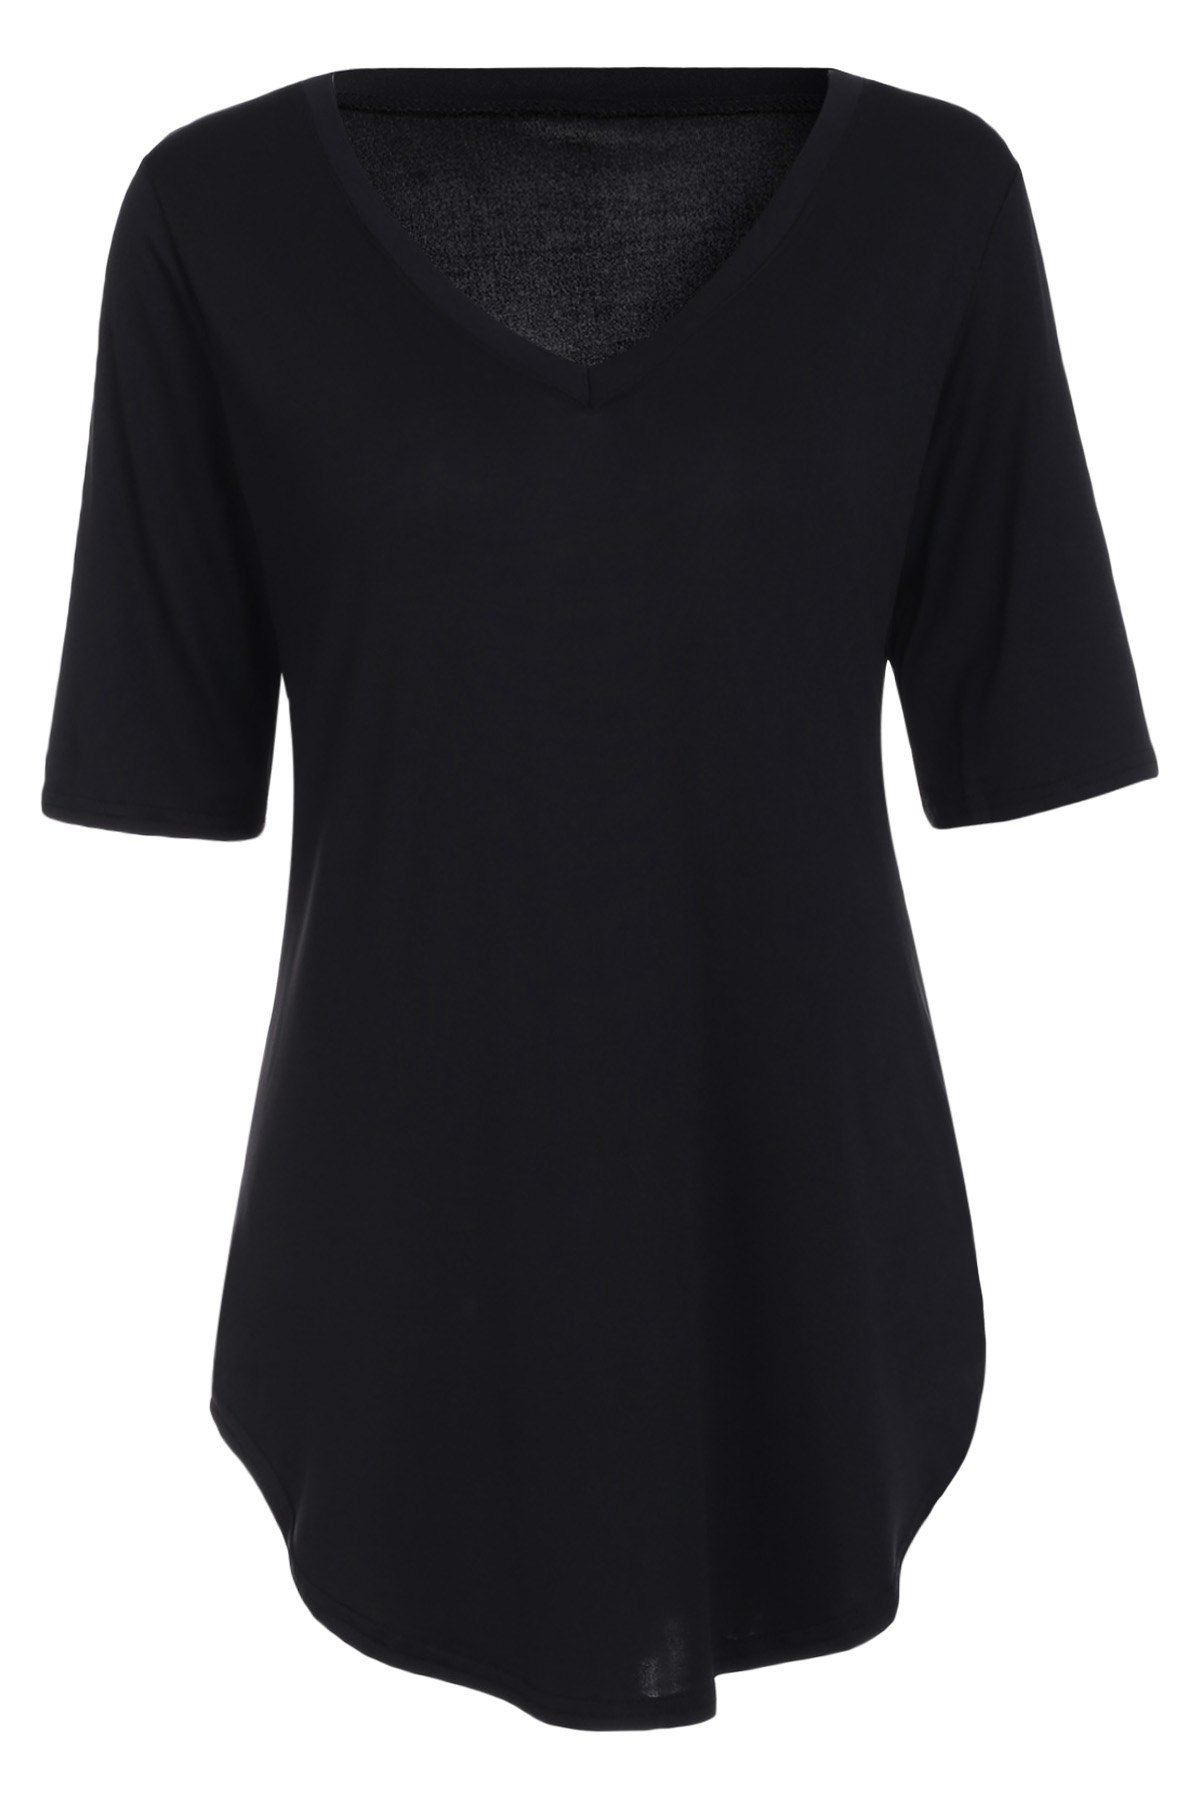 Casual Asymmetrical Short Sleeve V-Neck Solid Color Women's T-Shirt - BLACK L